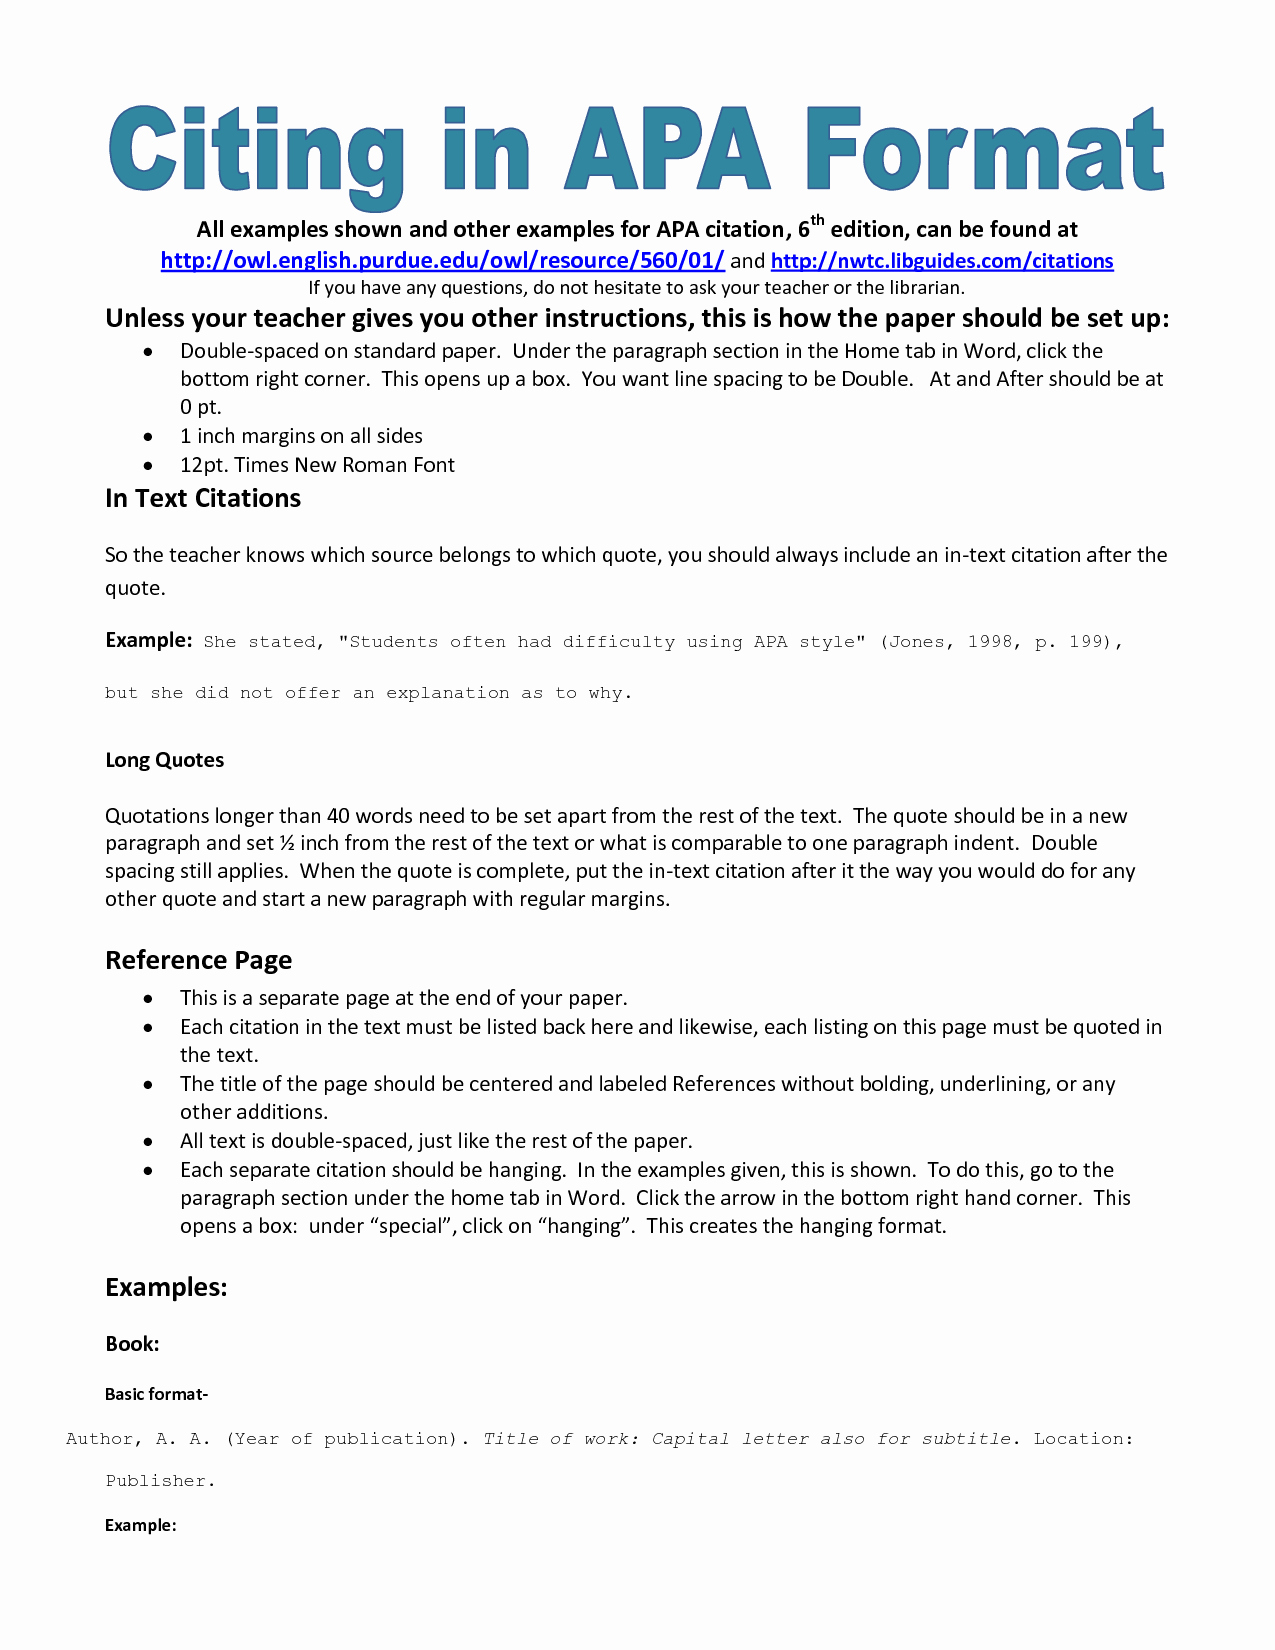 Apa format Example Paper Template Awesome Example Of Apa Citation In Paper